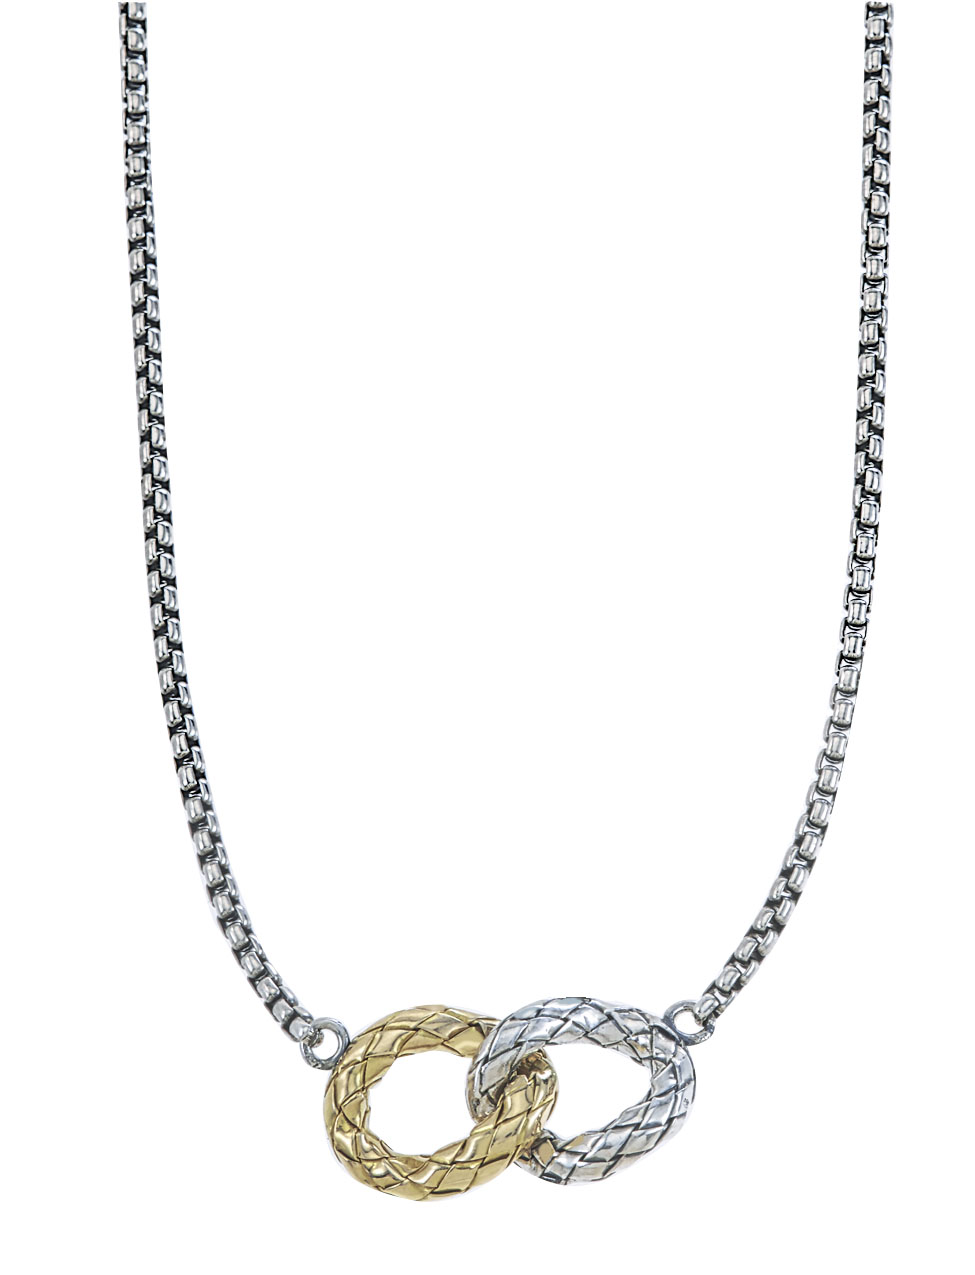 Sterling/Gold Necklace by Alisa